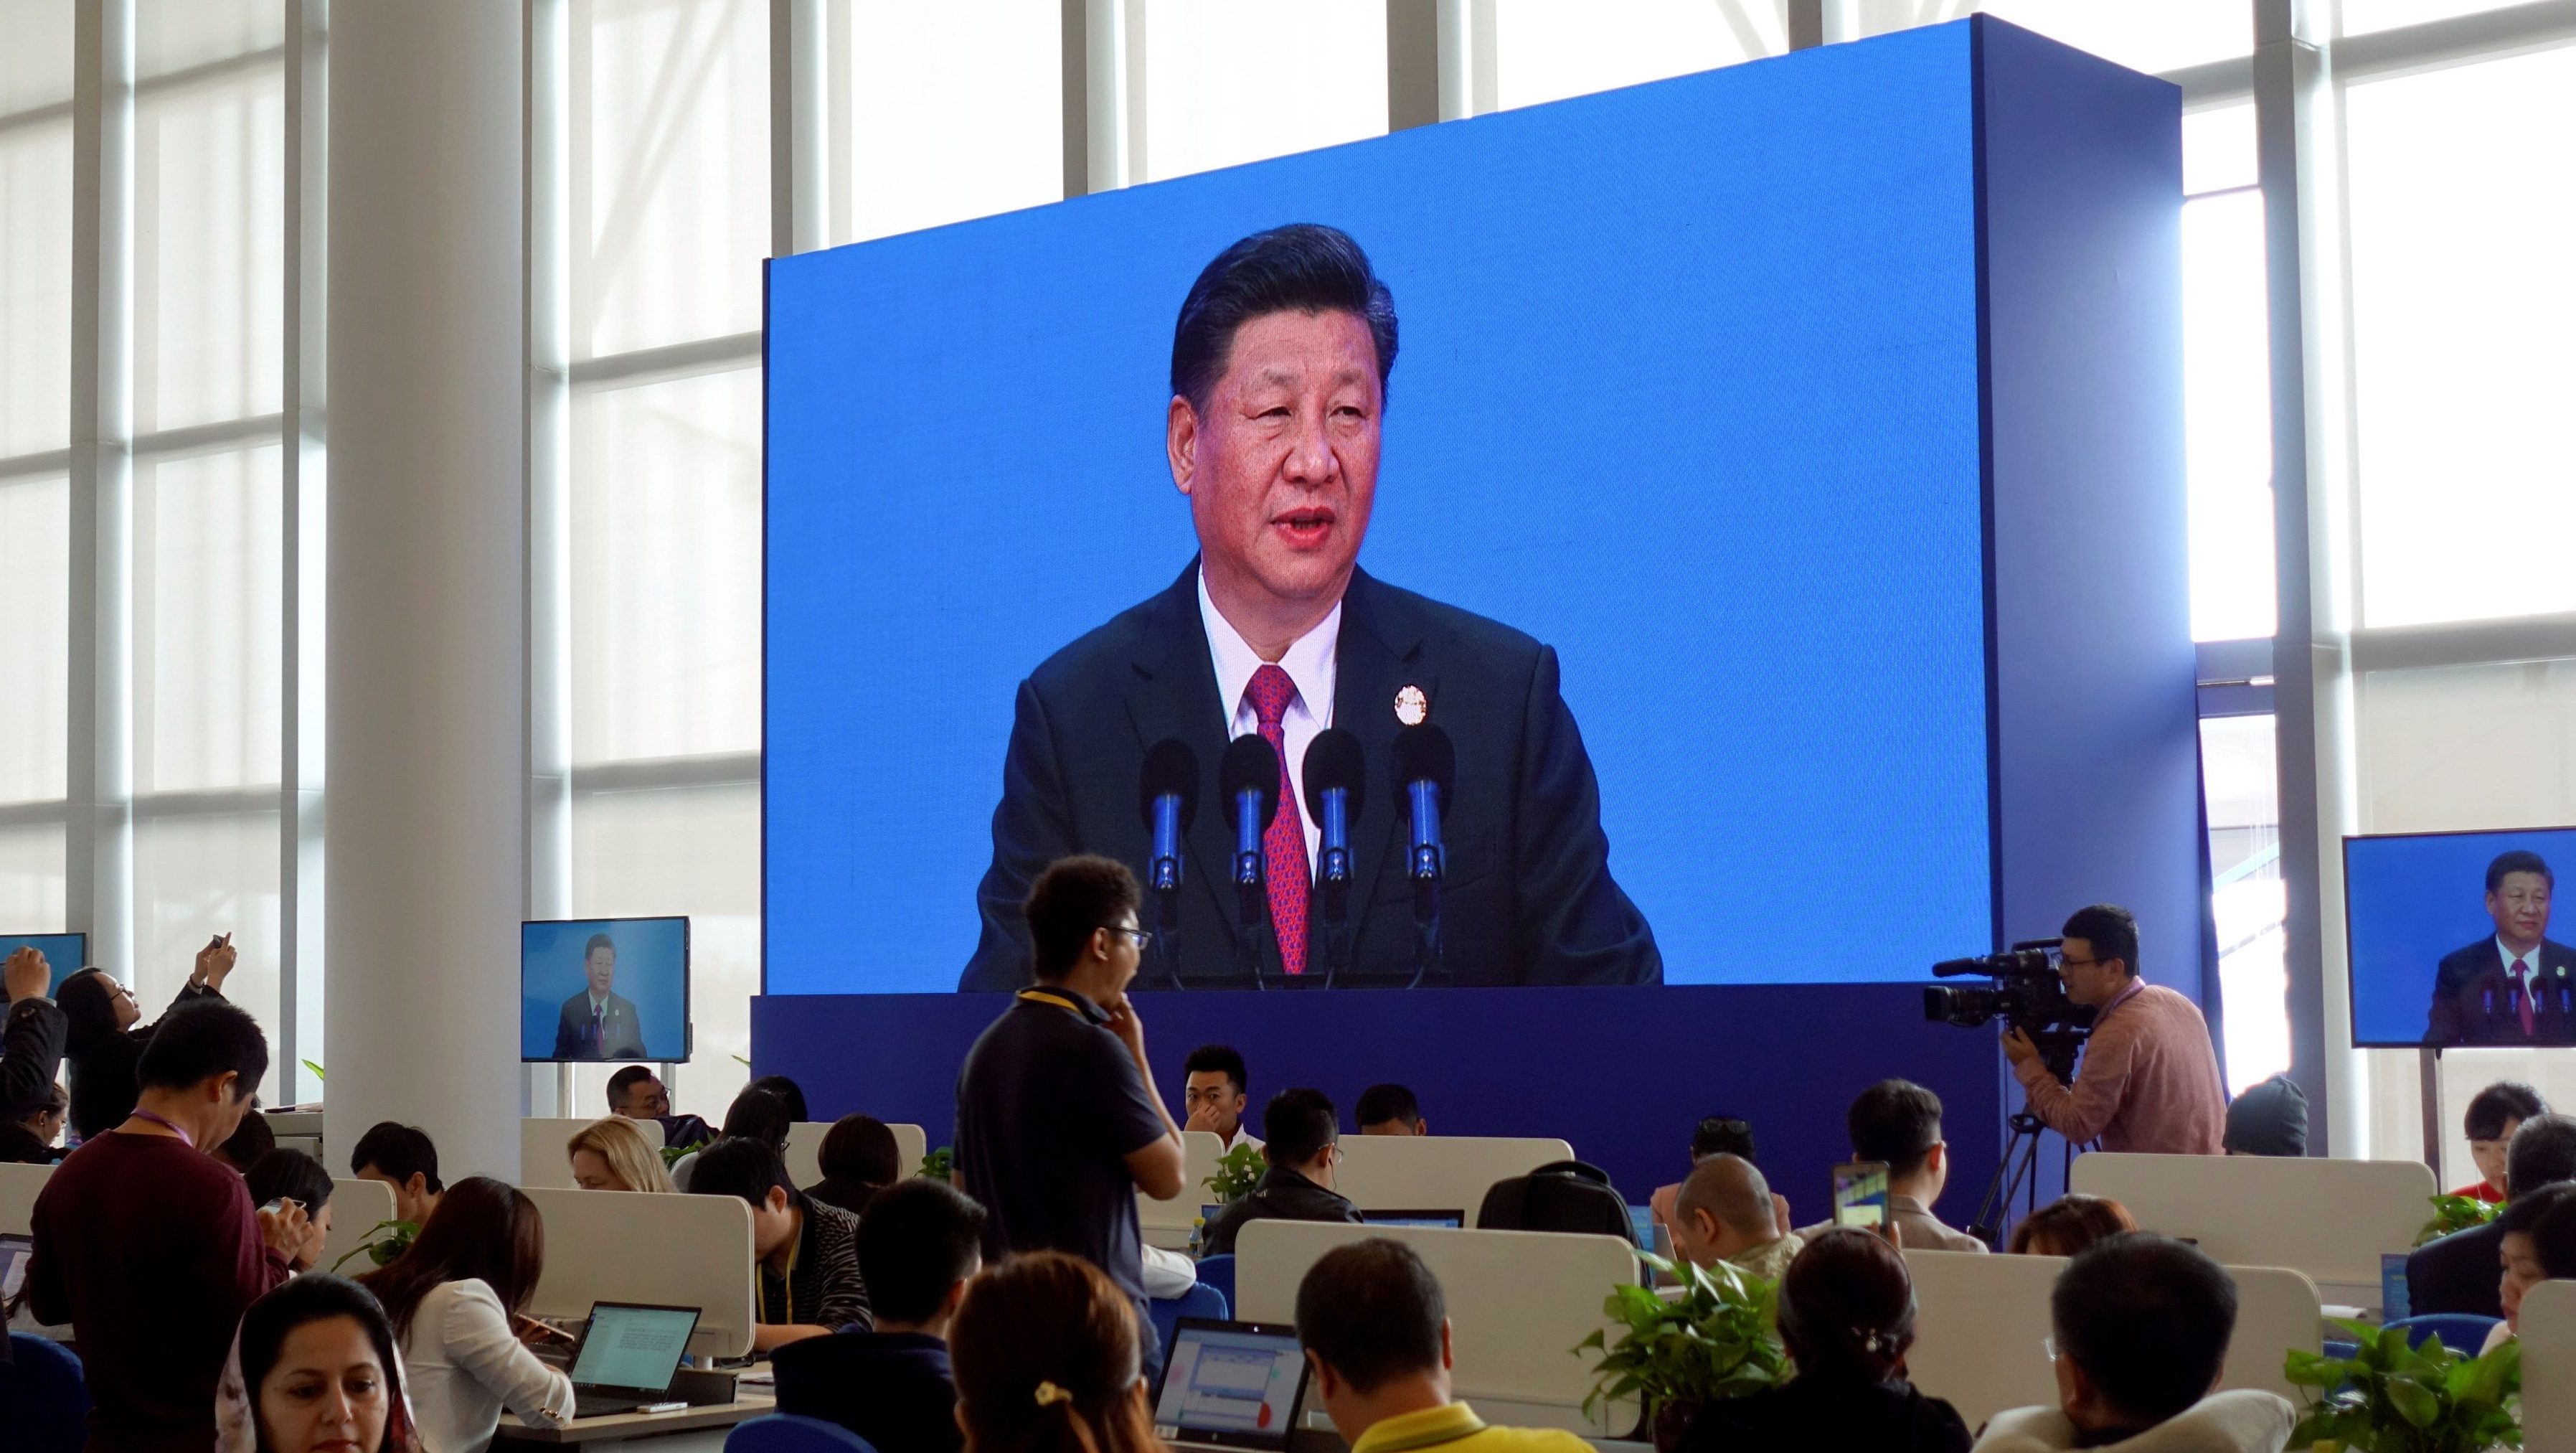 Reporters at media centre of Boao Forum for Asia watch Chinese President Xi Jinping delivering his speech at the annual forum, in Boao